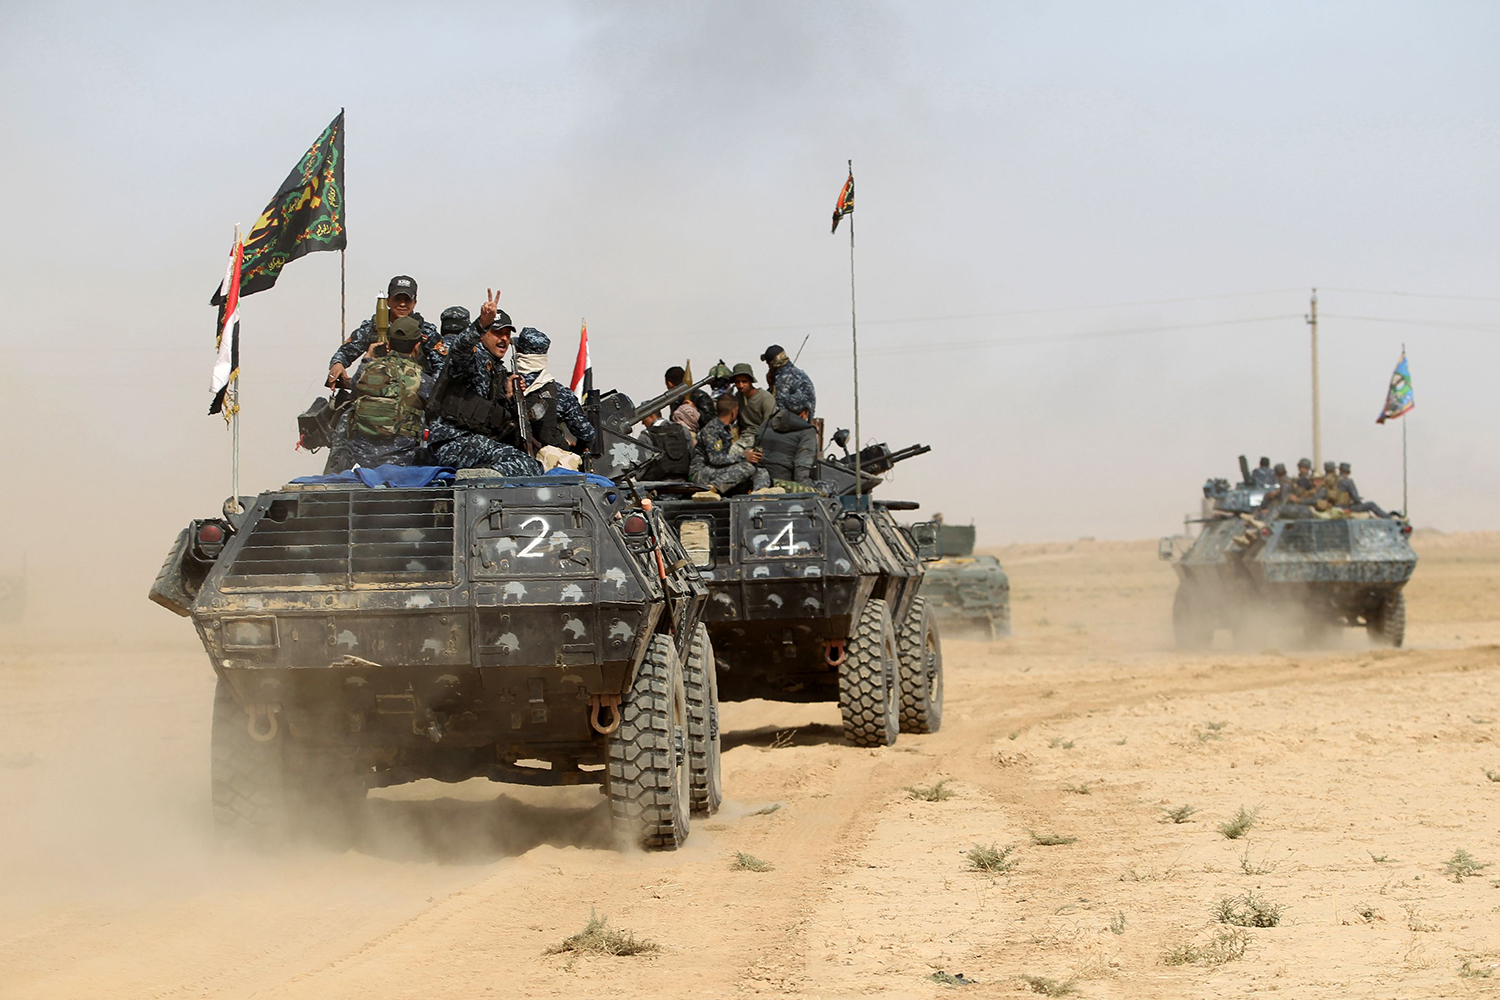 Iraqi forces deploy on October 17, 2016 in the area of al-Shurah, some 45 kms south of Mosul, as they advance towards the city to retake it from the Islamic State (IS) group jihadists. Some 30,000 federal forces are leading the offensive, backed by air and ground support from a 60-nation US-led coalition, in what is expected to be a long and difficult assault on IS's last major Iraqi stronghold. / AFP PHOTO / AHMAD AL-RUBAYE / TT / kod 444